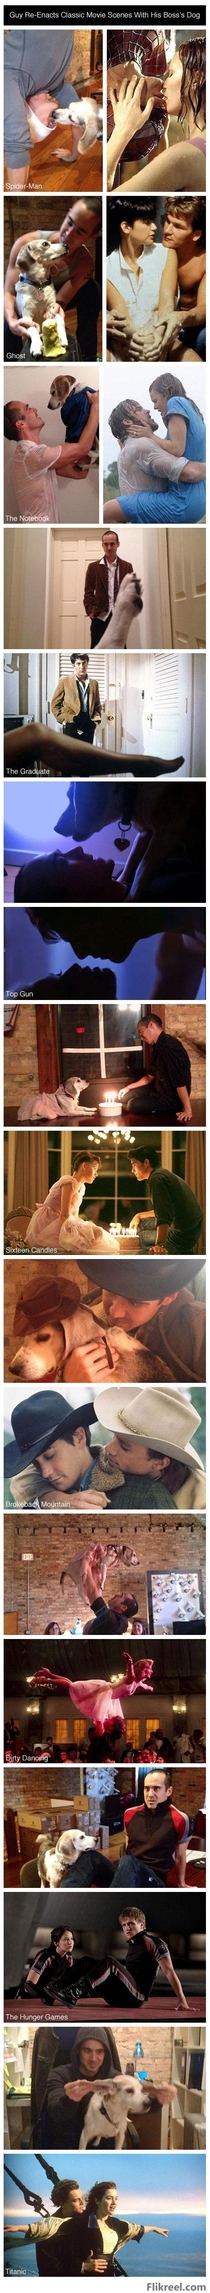 Guy re-enacts classic movies scenes with his Bosss dog